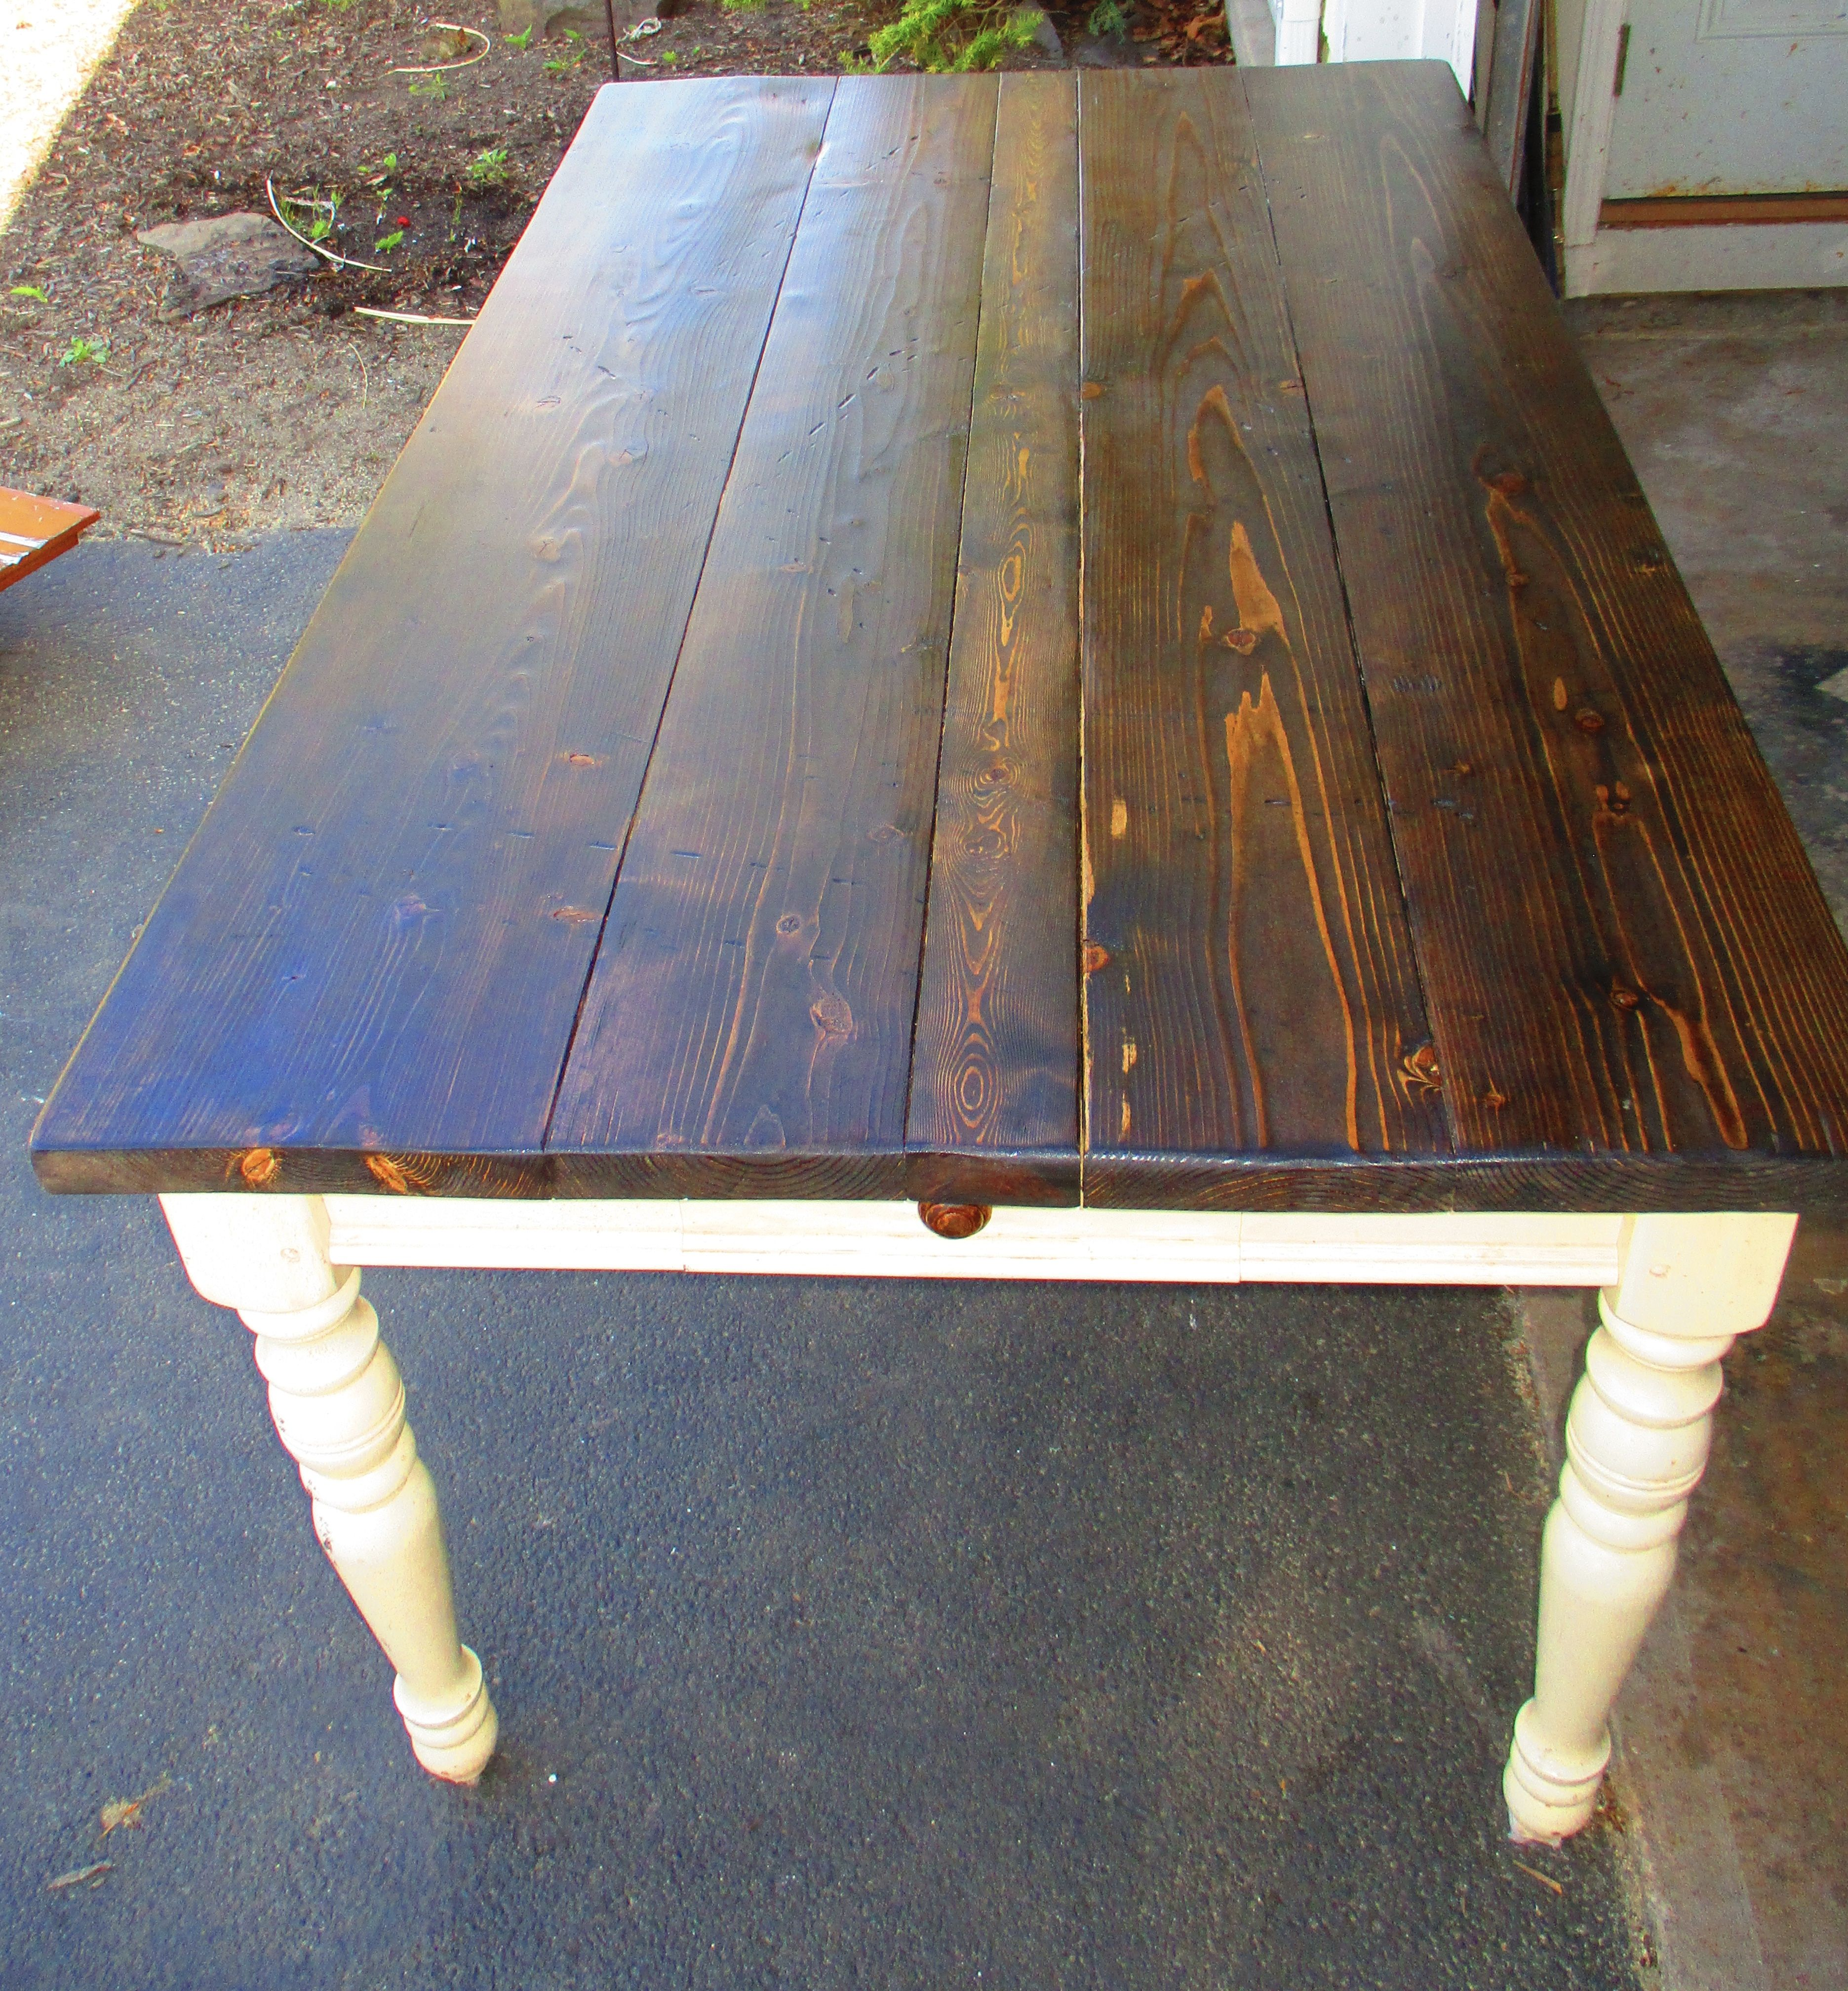 New table top for old table Used pine barn wood stained with